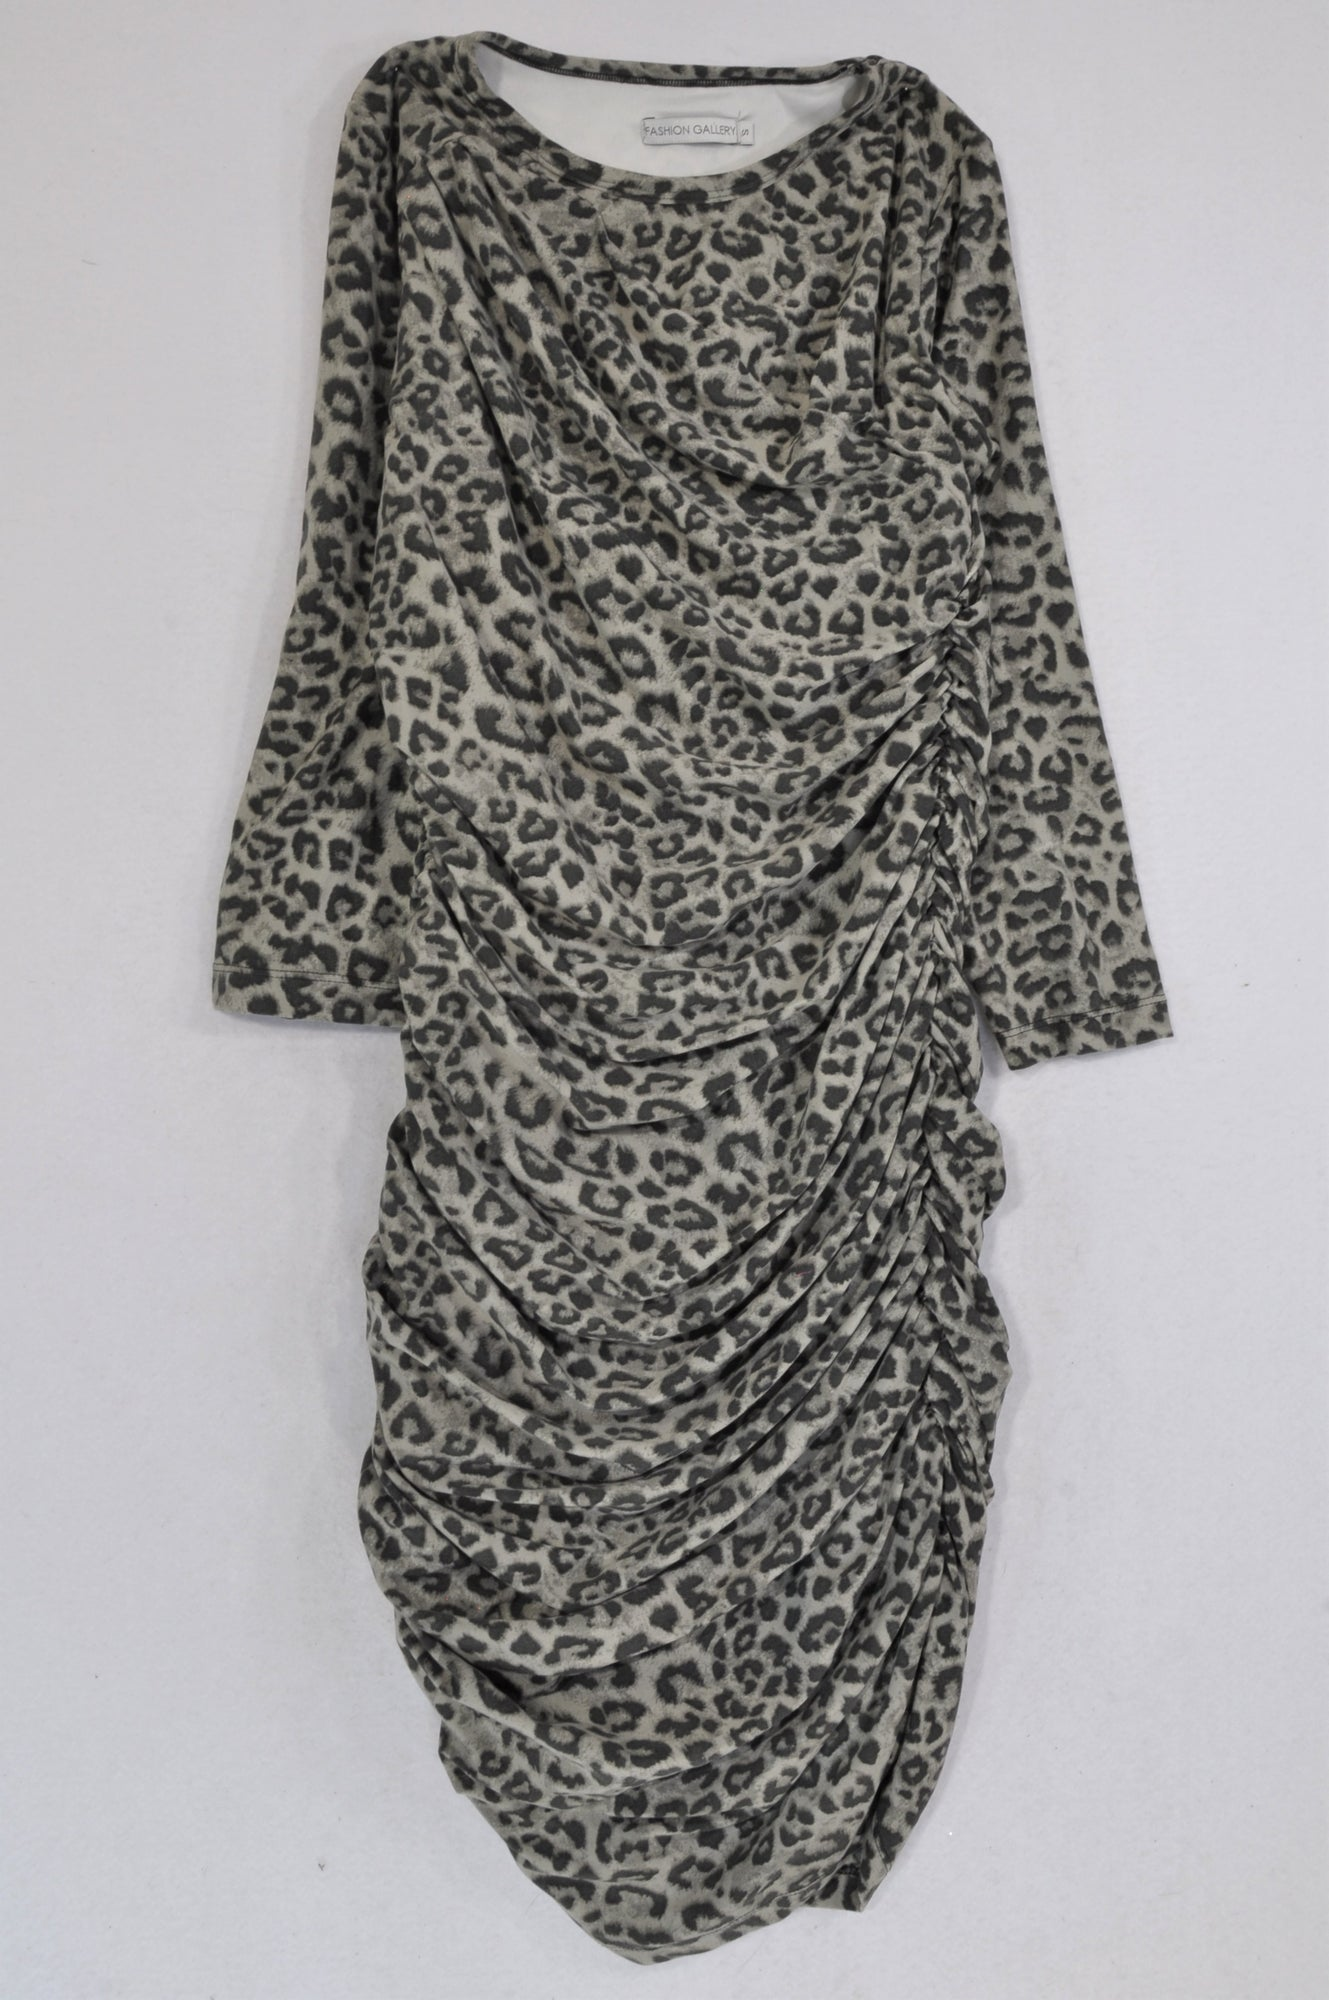 Fashion Express Grey Leopard Print Dress Women Size S